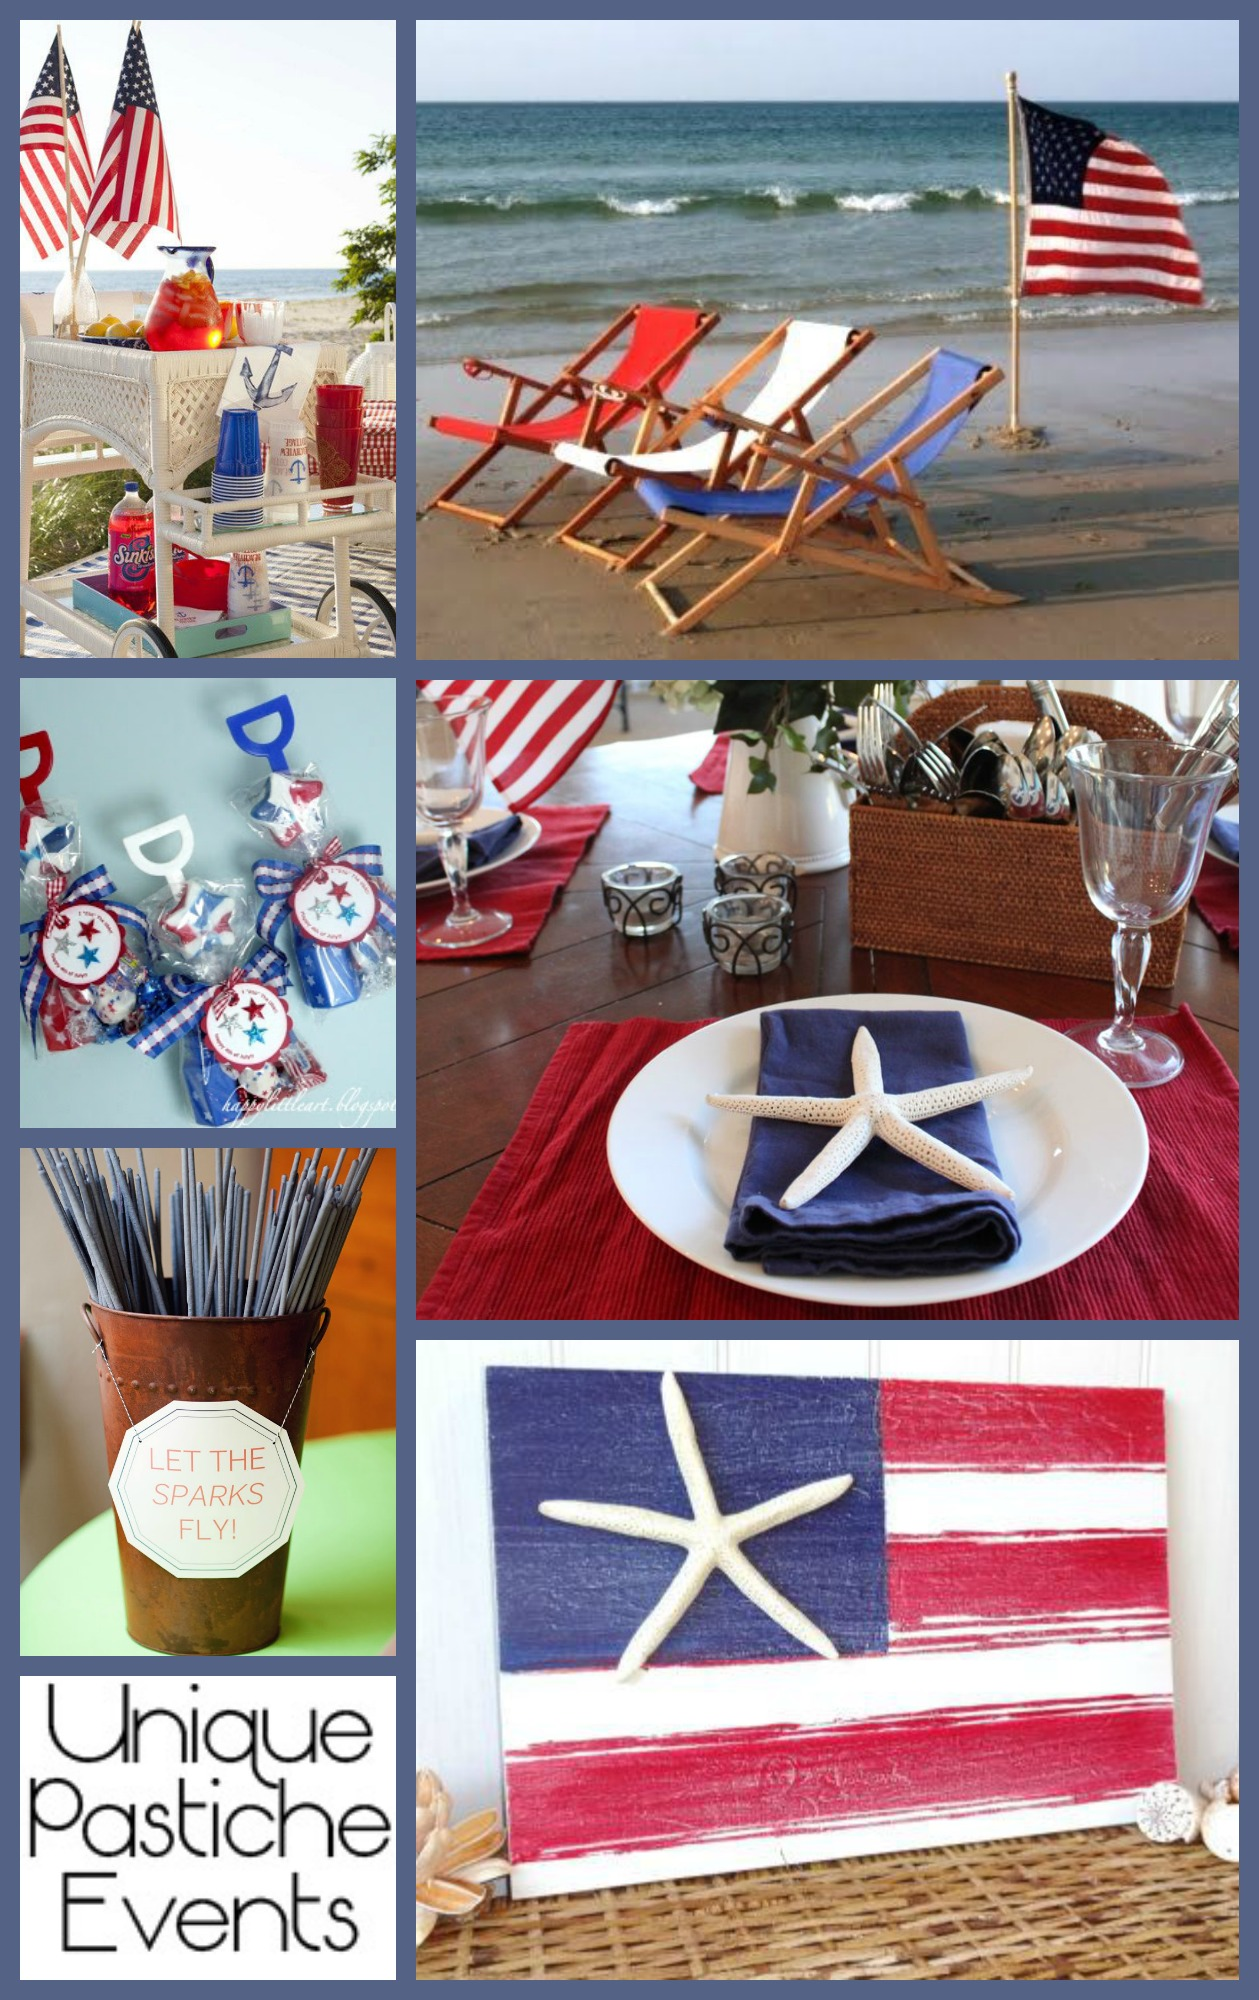 Beach side 4th of july party ideas unique pastiche events for 4th of july celebration ideas